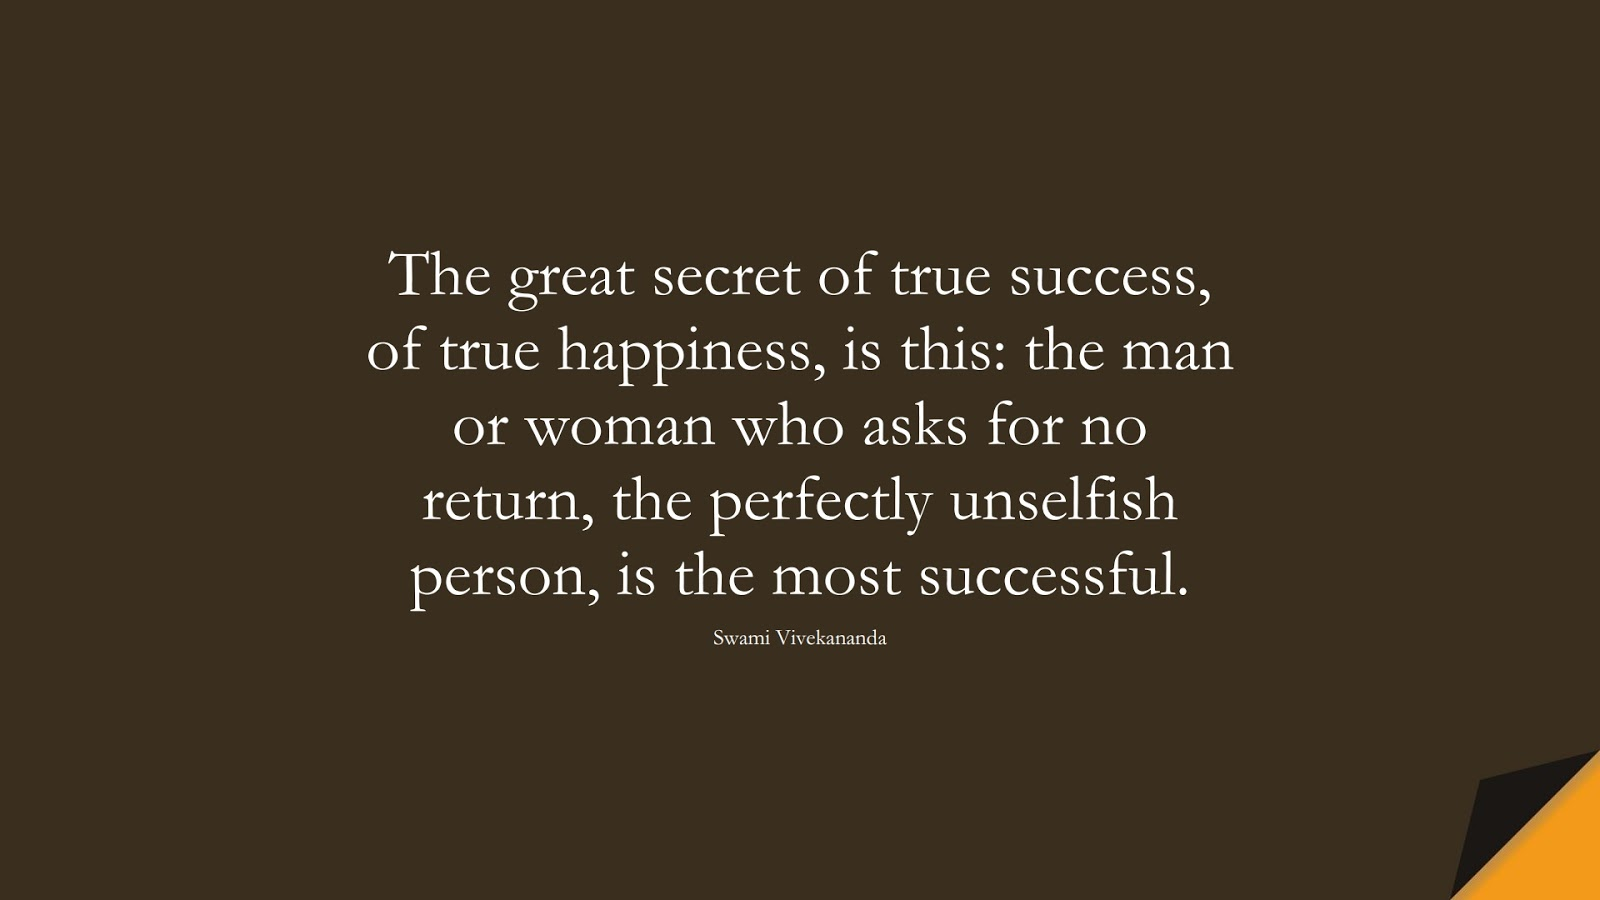 The great secret of true success, of true happiness, is this: the man or woman who asks for no return, the perfectly unselfish person, is the most successful. (Swami Vivekananda);  #SuccessQuotes